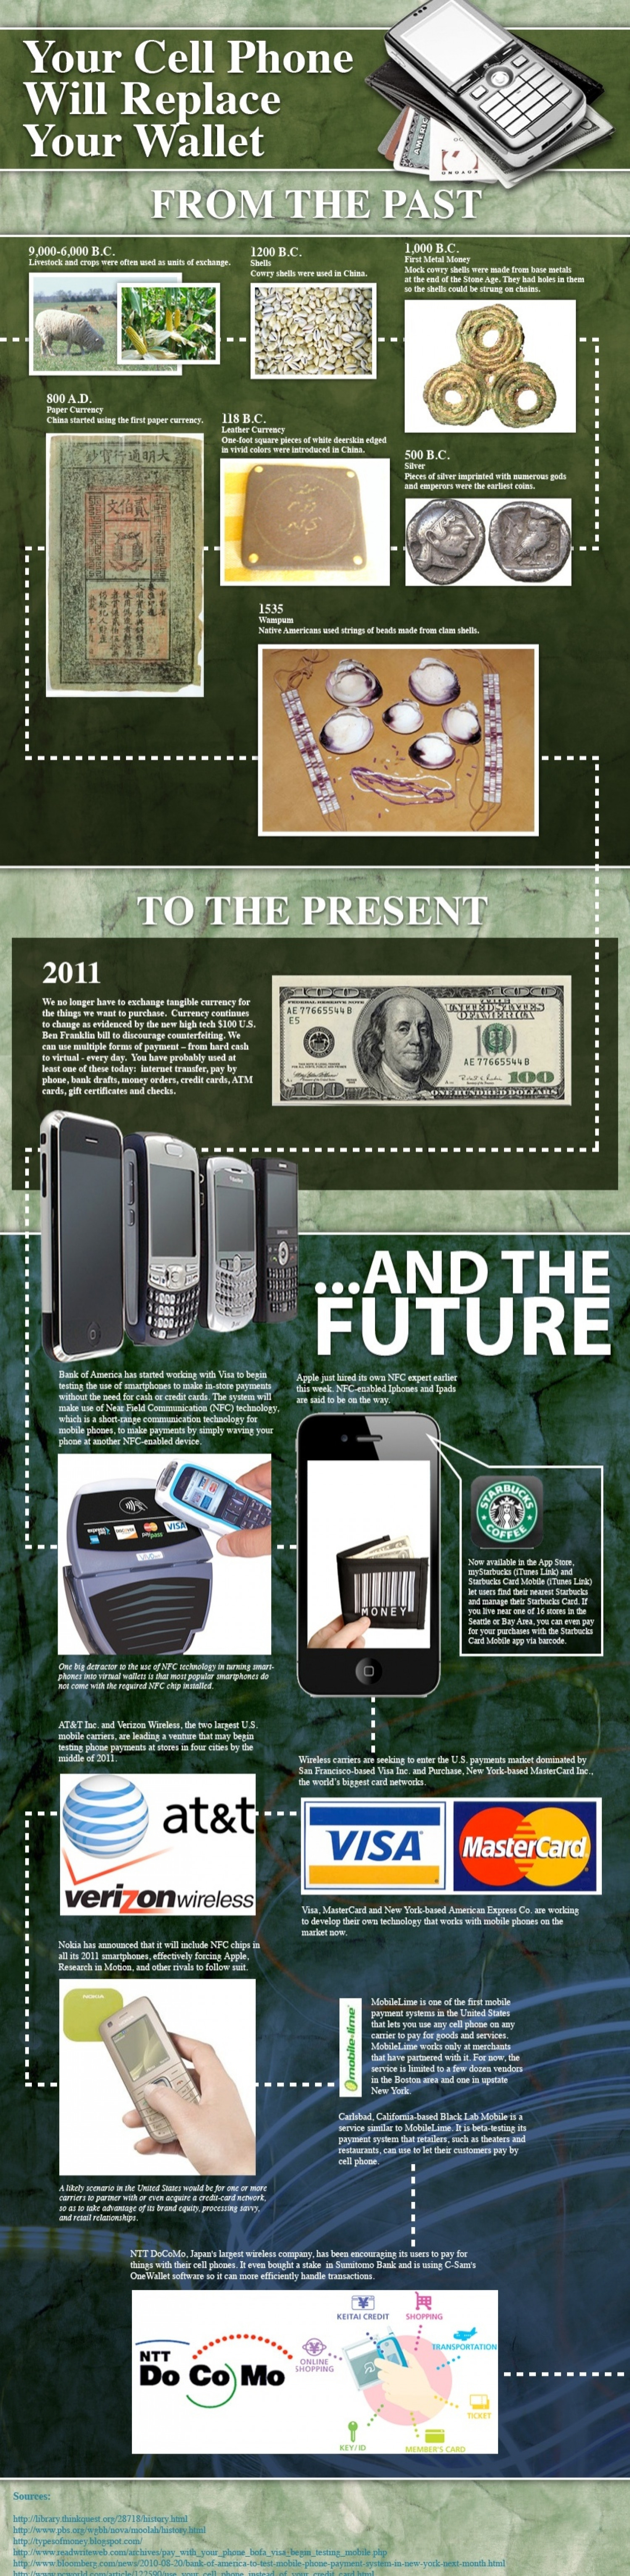 Your Cell Phone Will Replace Your Wallet  Infographic